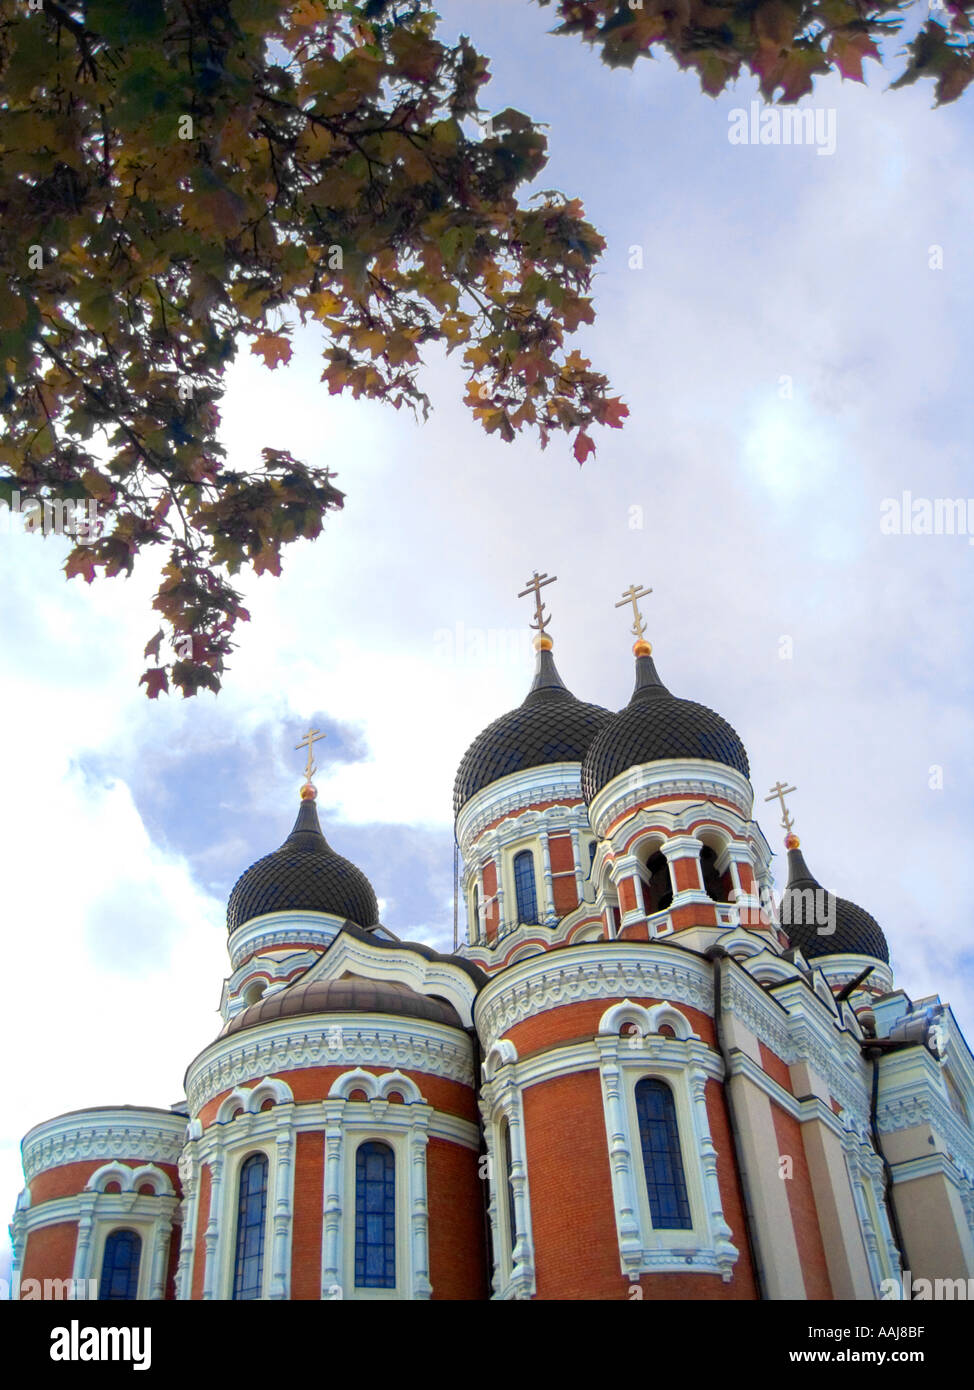 The Russian-orthodox Alexander Nevsky Cathedral in Tallinn, Estonia, was built in Russian revival style 18941900. Stock Photo